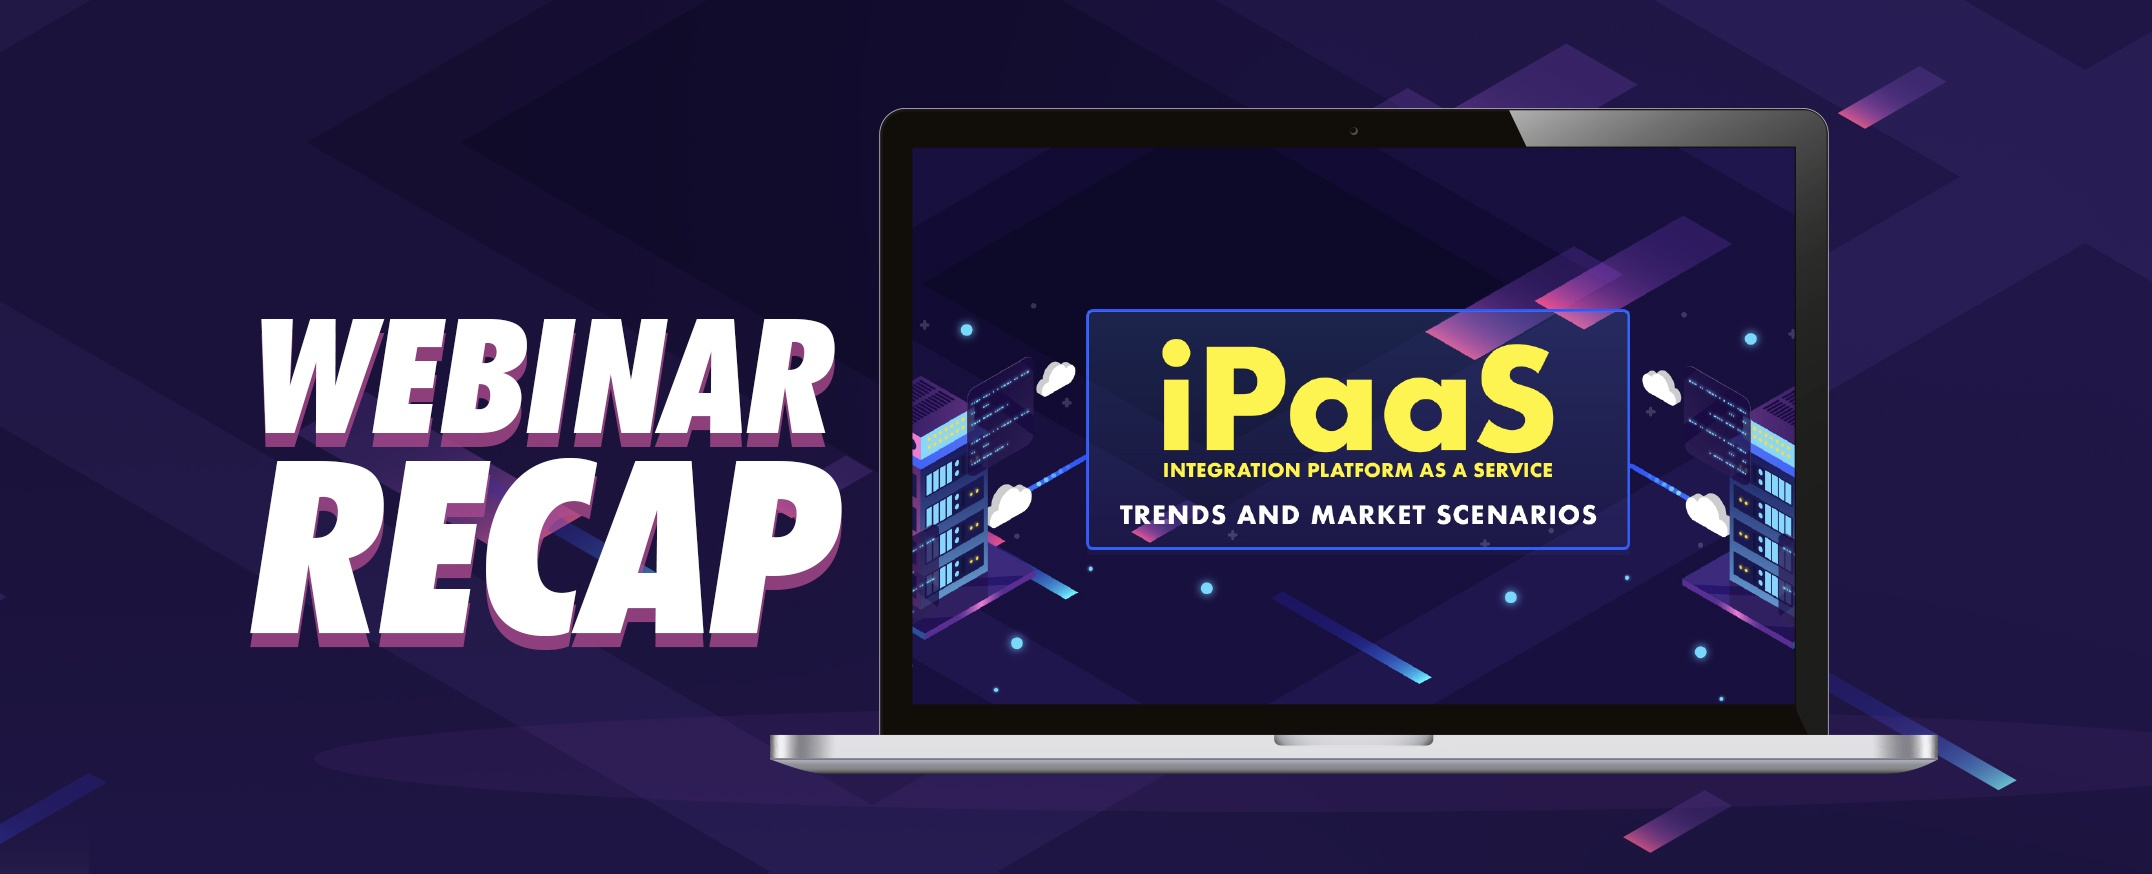 Webinar-Recap-Integration-Platform-as-a-Service-iPaaS- Trends